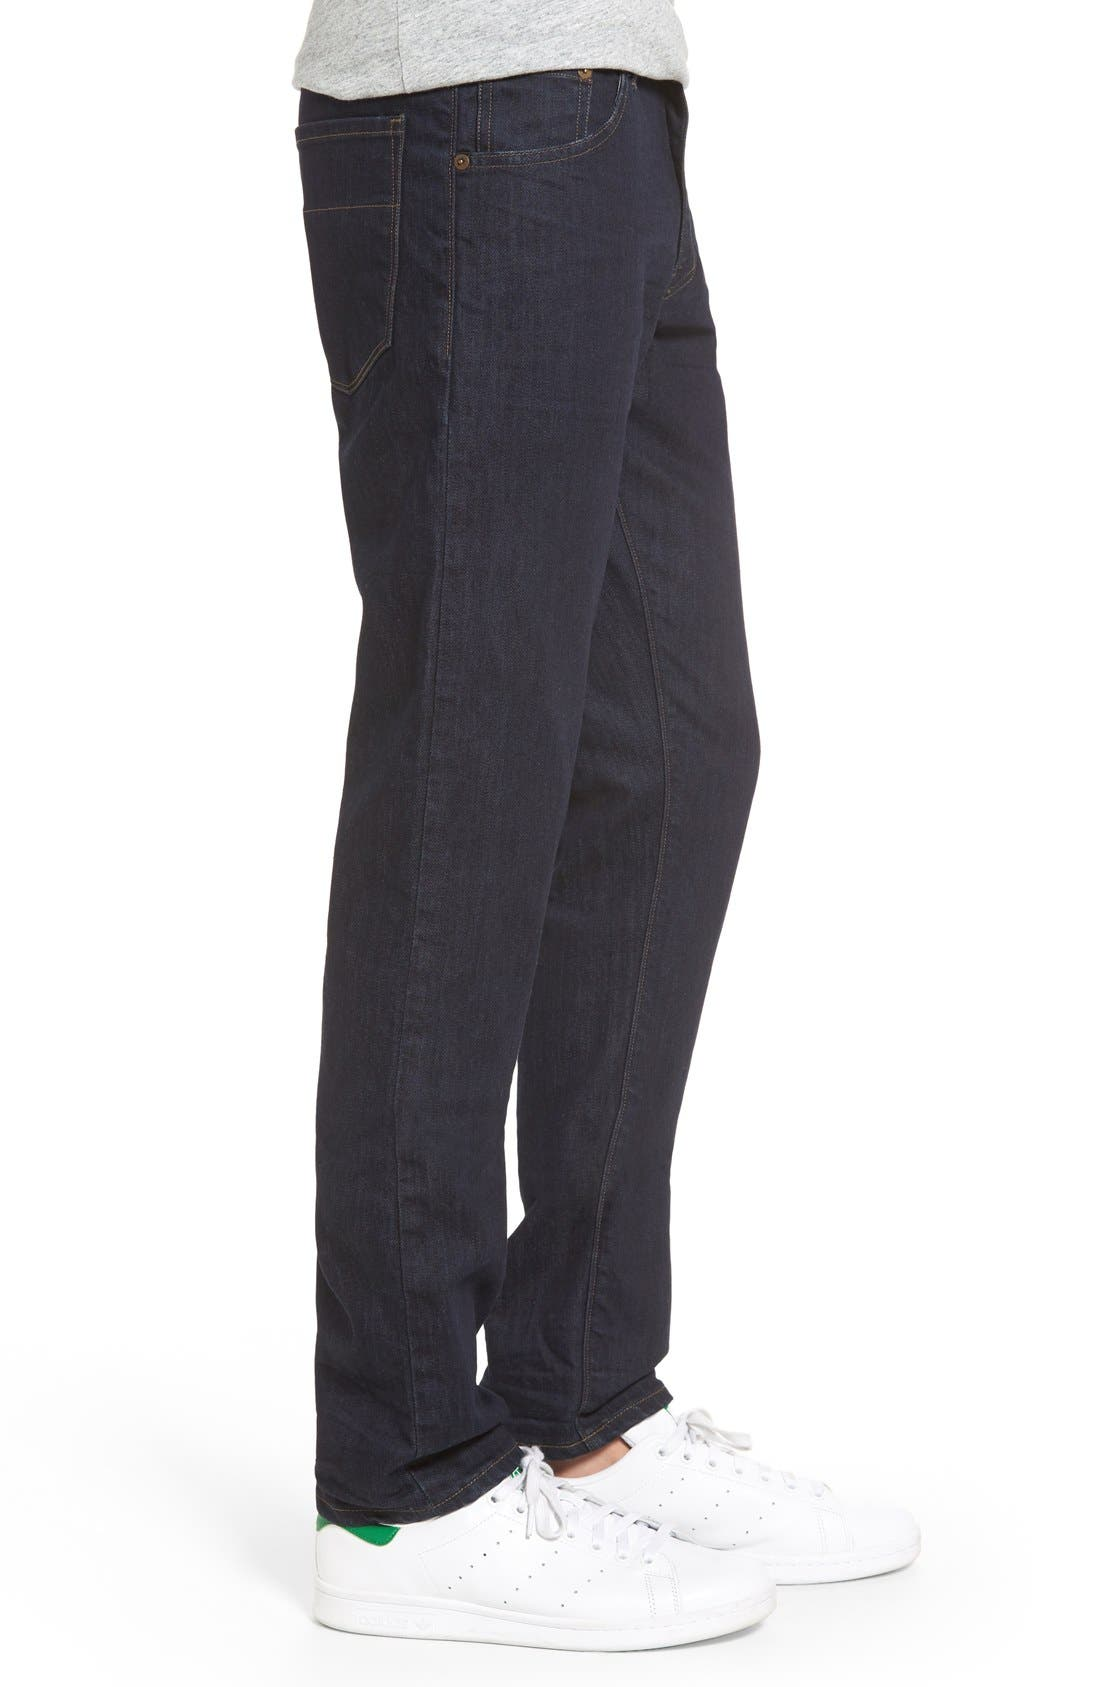 'Jones' Slim Straight Leg Jeans,                             Alternate thumbnail 3, color,                             418